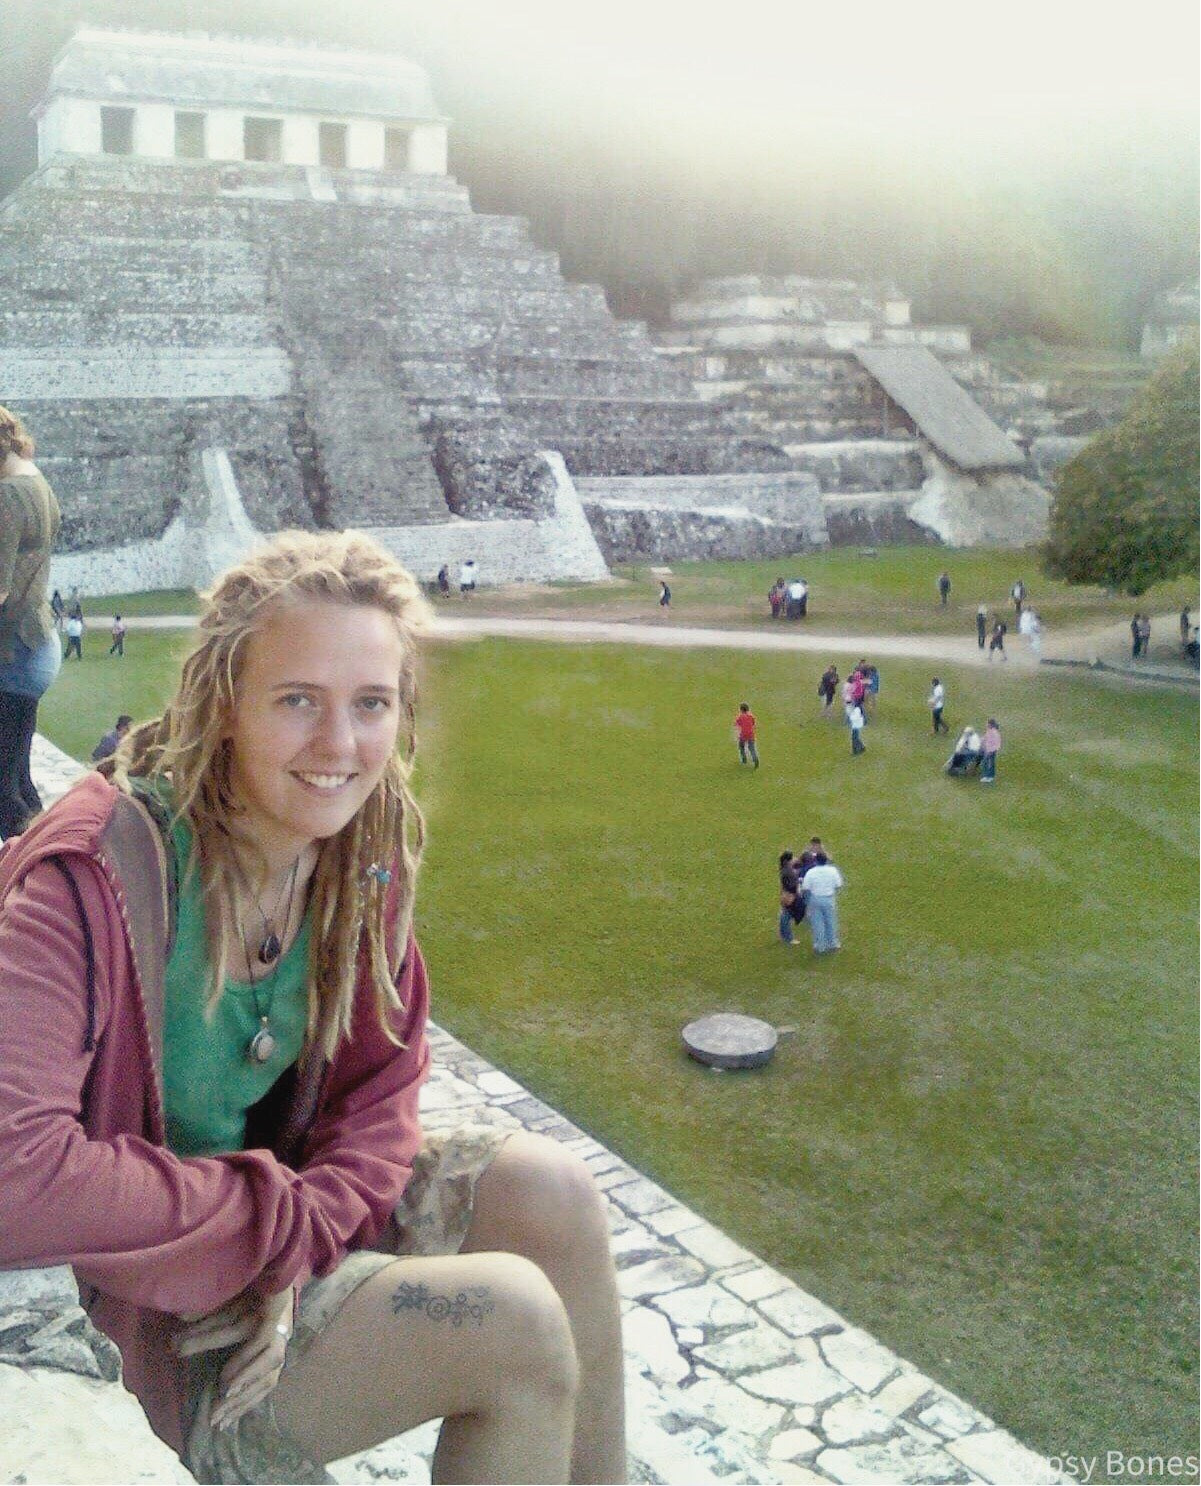 Trip to Ancient Mayan Pyramids in Yucatan Peninsula 12/21/2012